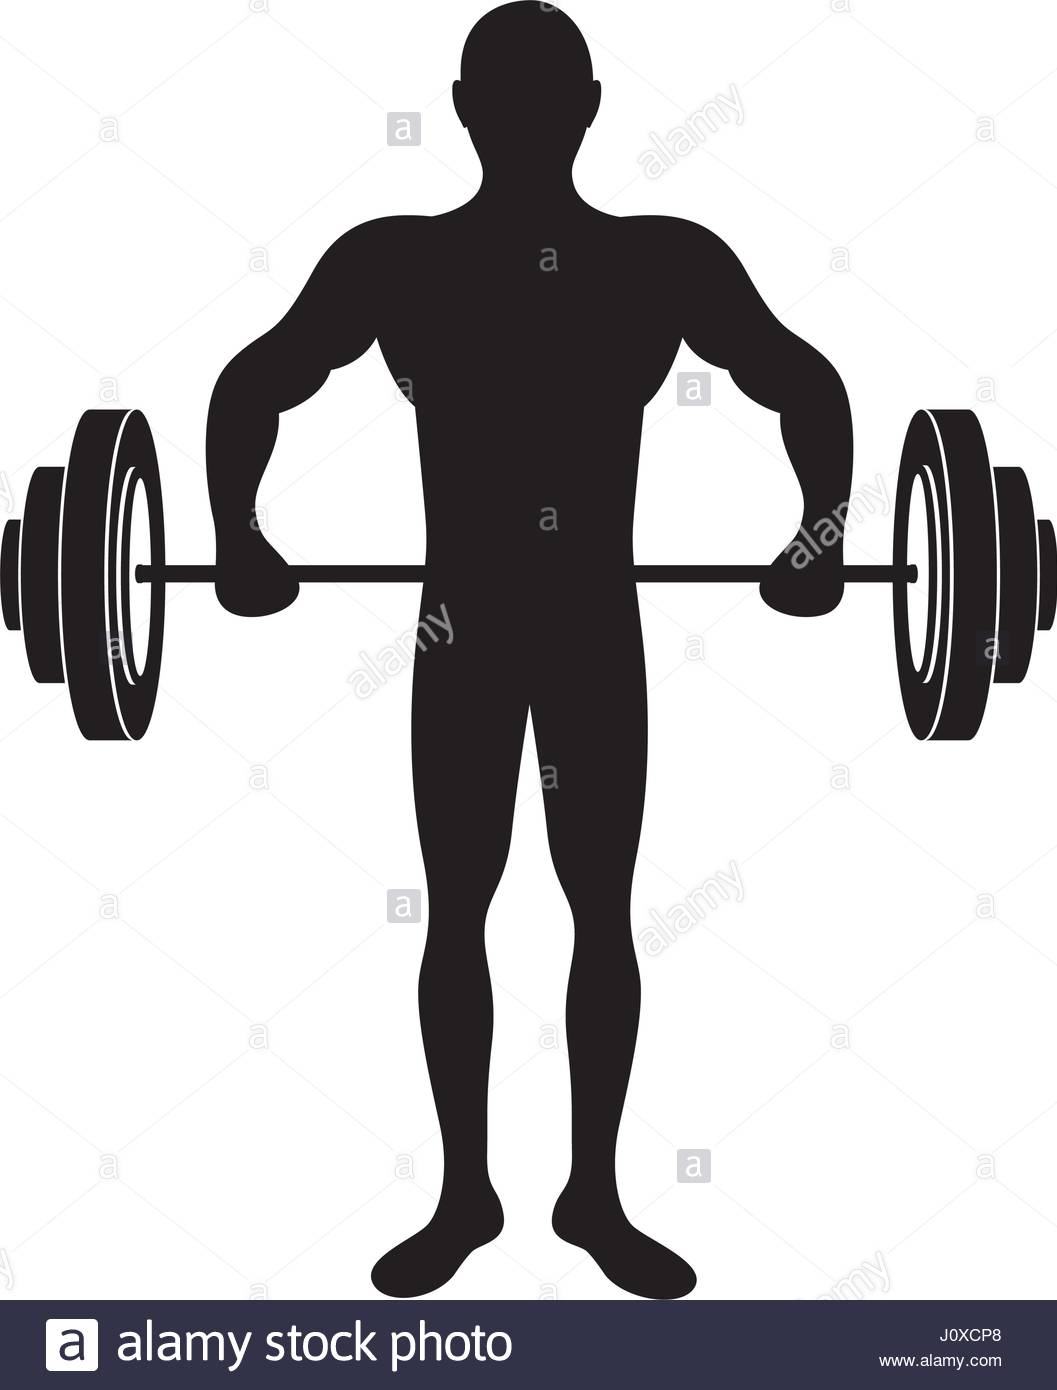 1057x1390 Black Silhouette Muscle Man Lifting A Disc Weights Stock Vector